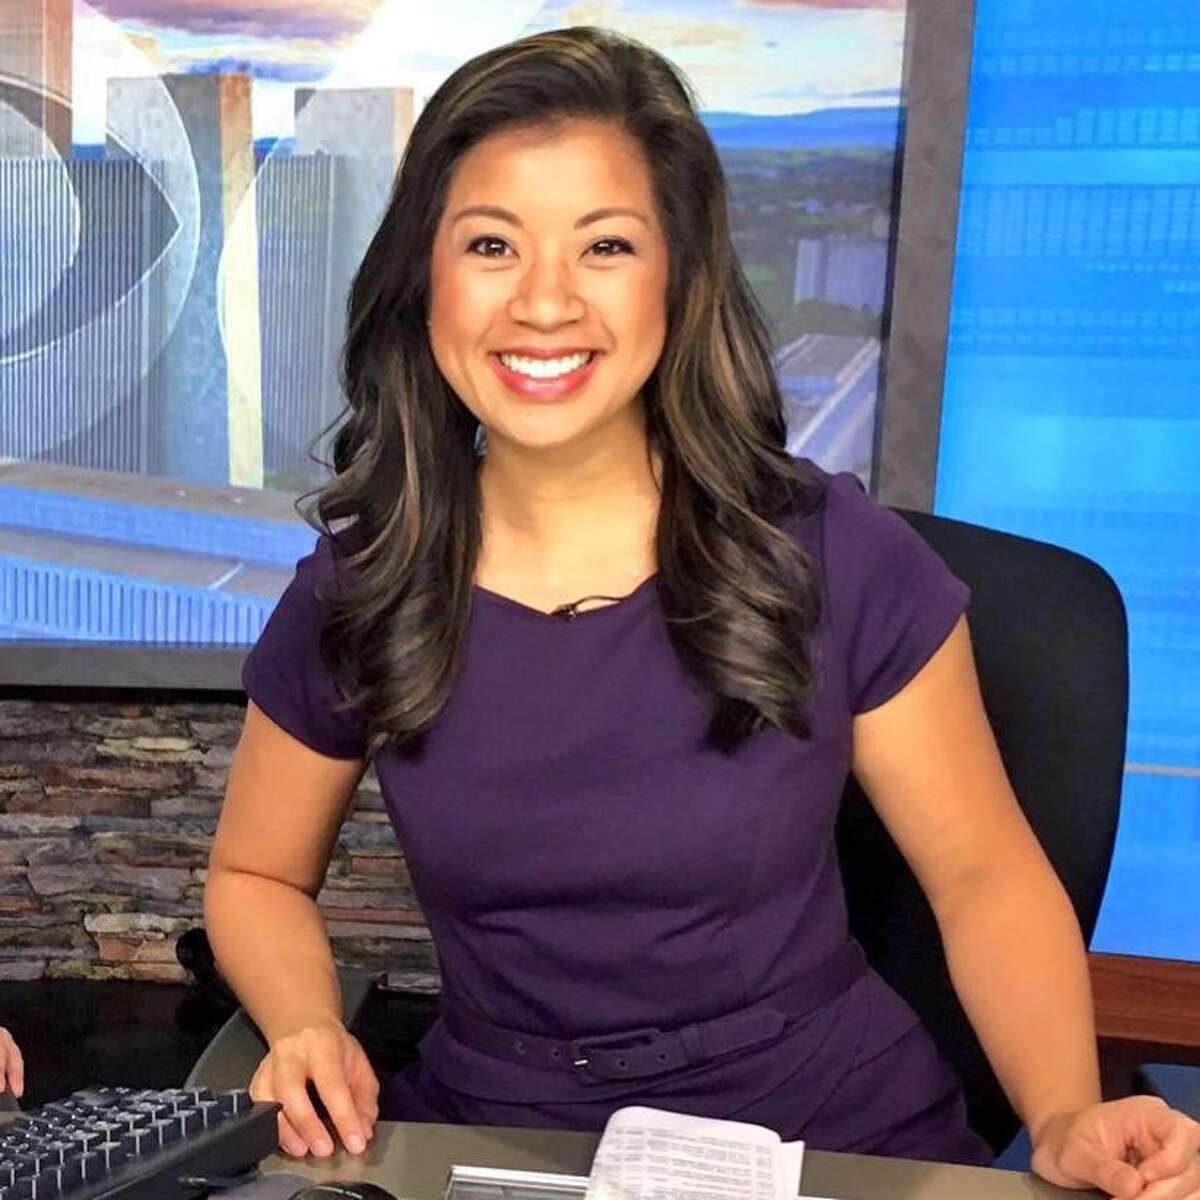 """1. I knew I wanted to be a news anchor in the fourth grade. During a field trip to the local Fox station, I sat down at long-time anchor Kelly Ring's desk and said to myself """"I'm going to do this someday."""""""